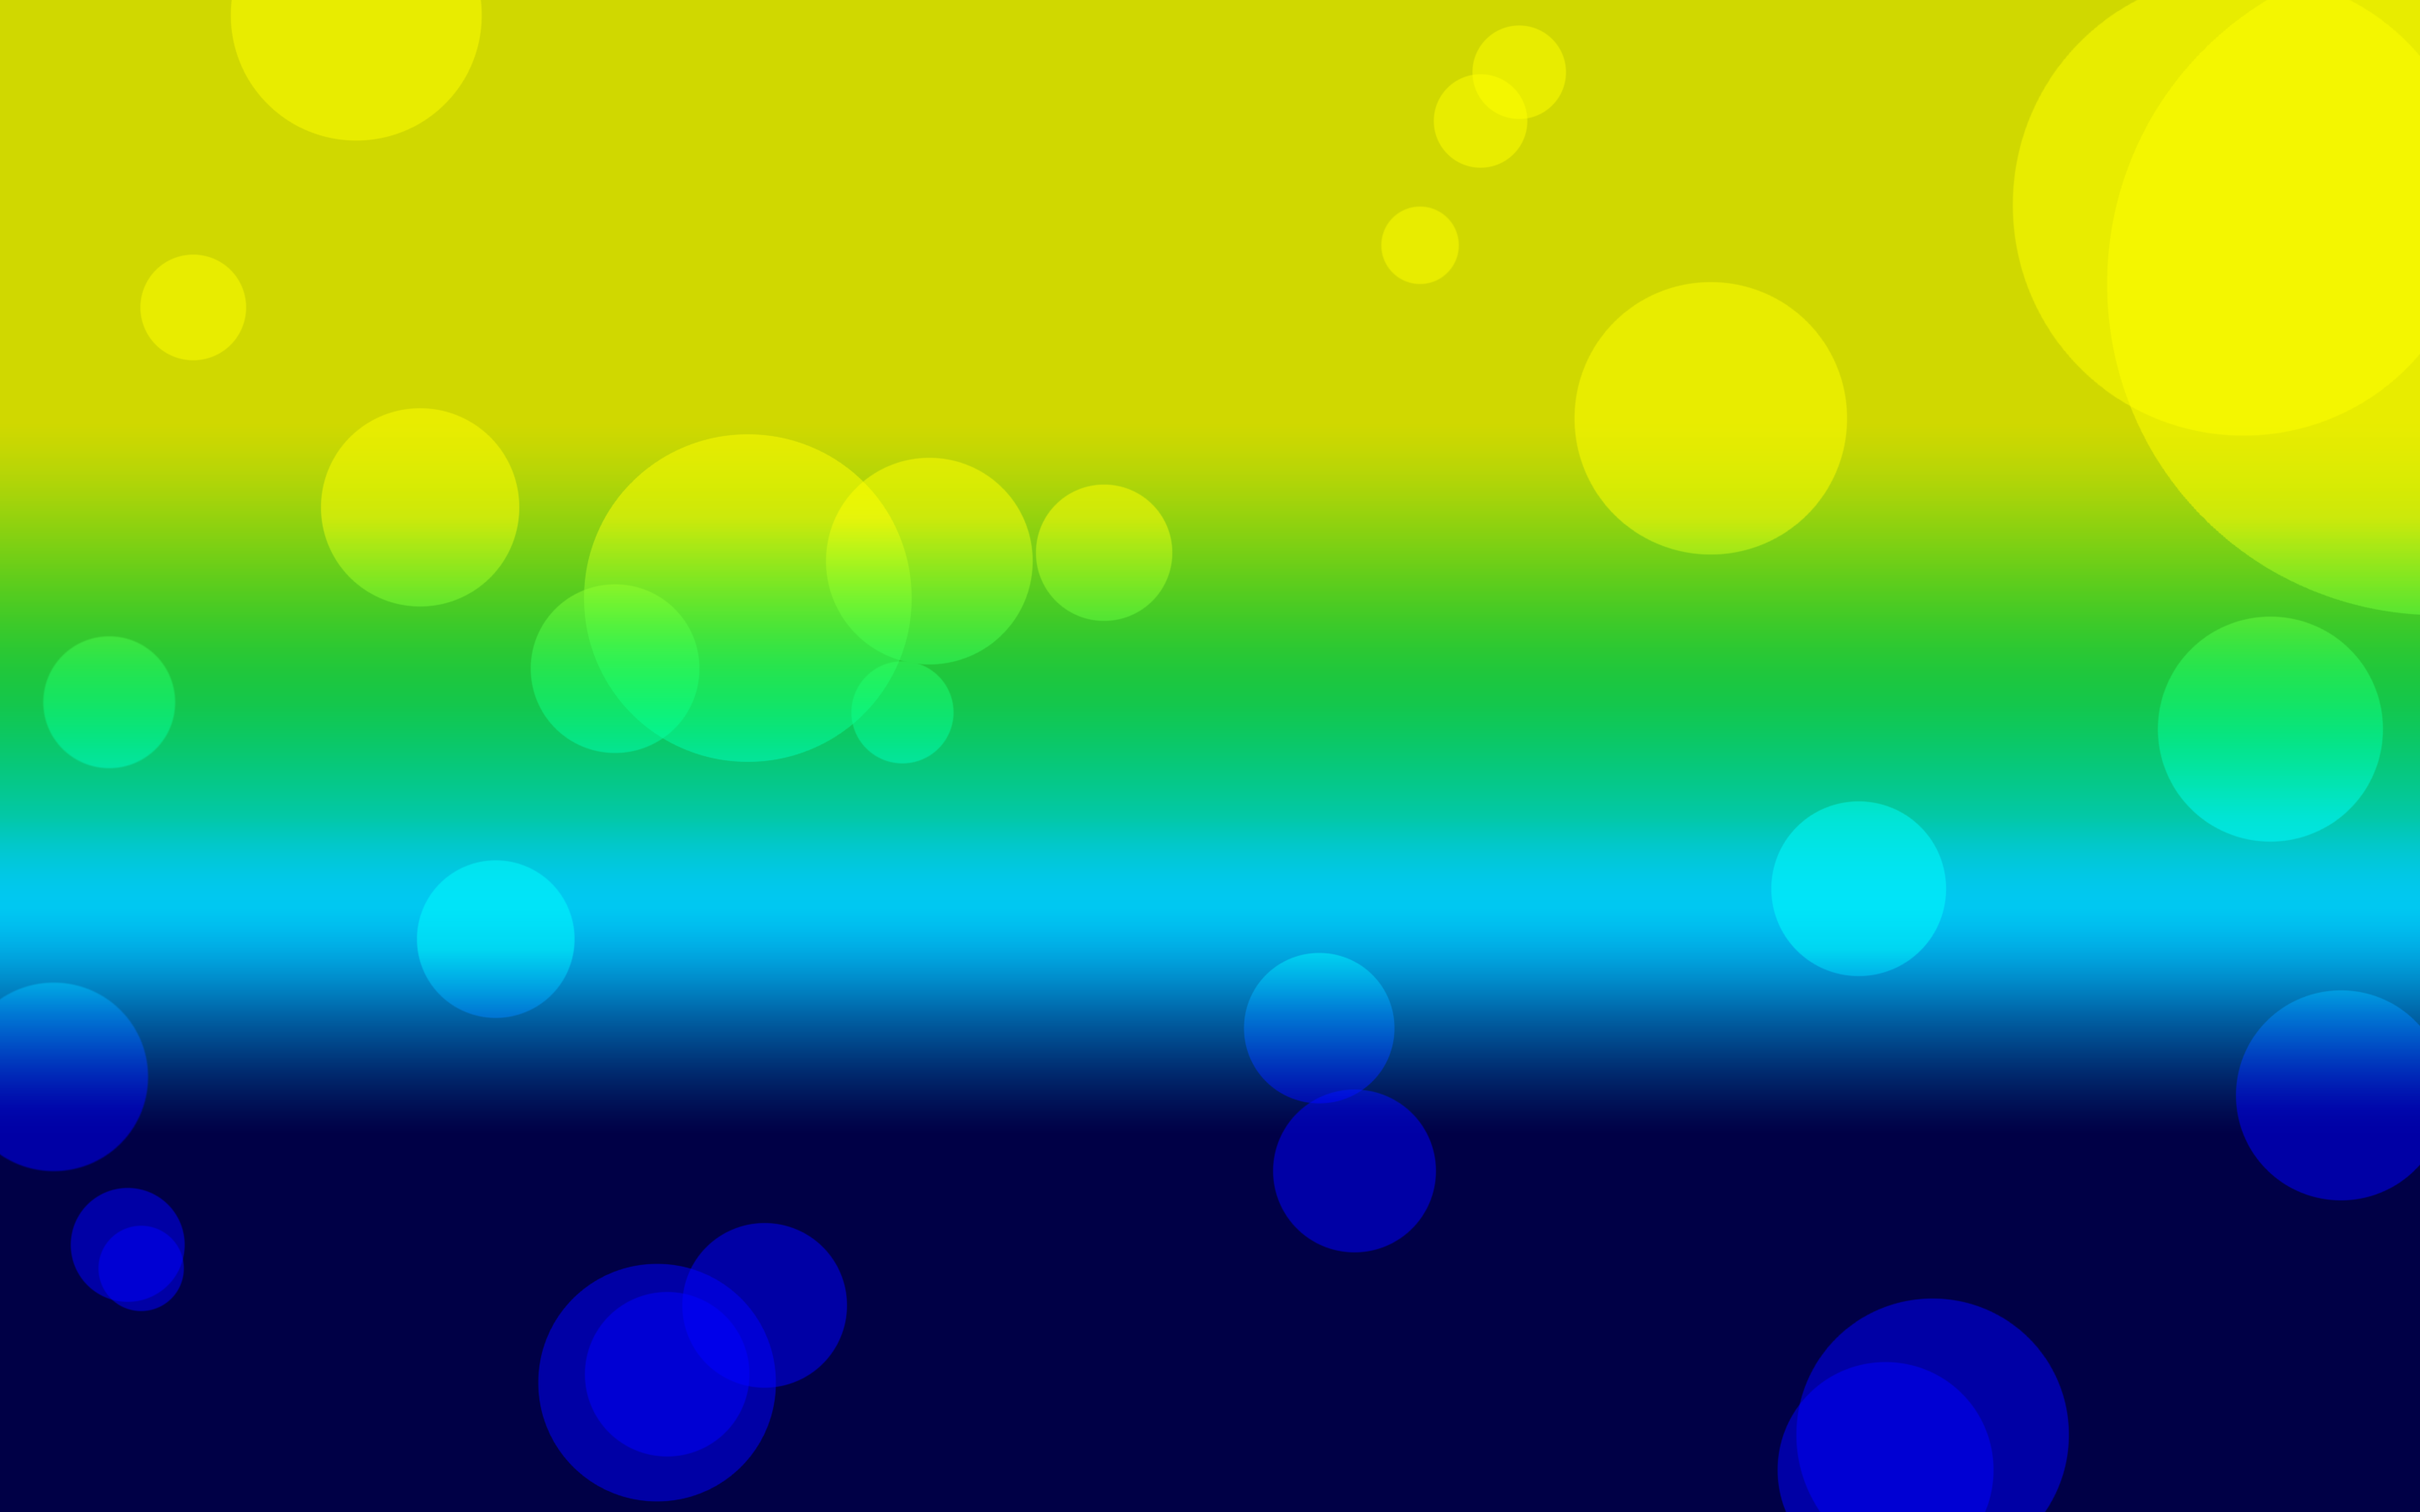 iOS 7 Style Desktop Rainbow Wallpaper 3 by Star784 2880x1800